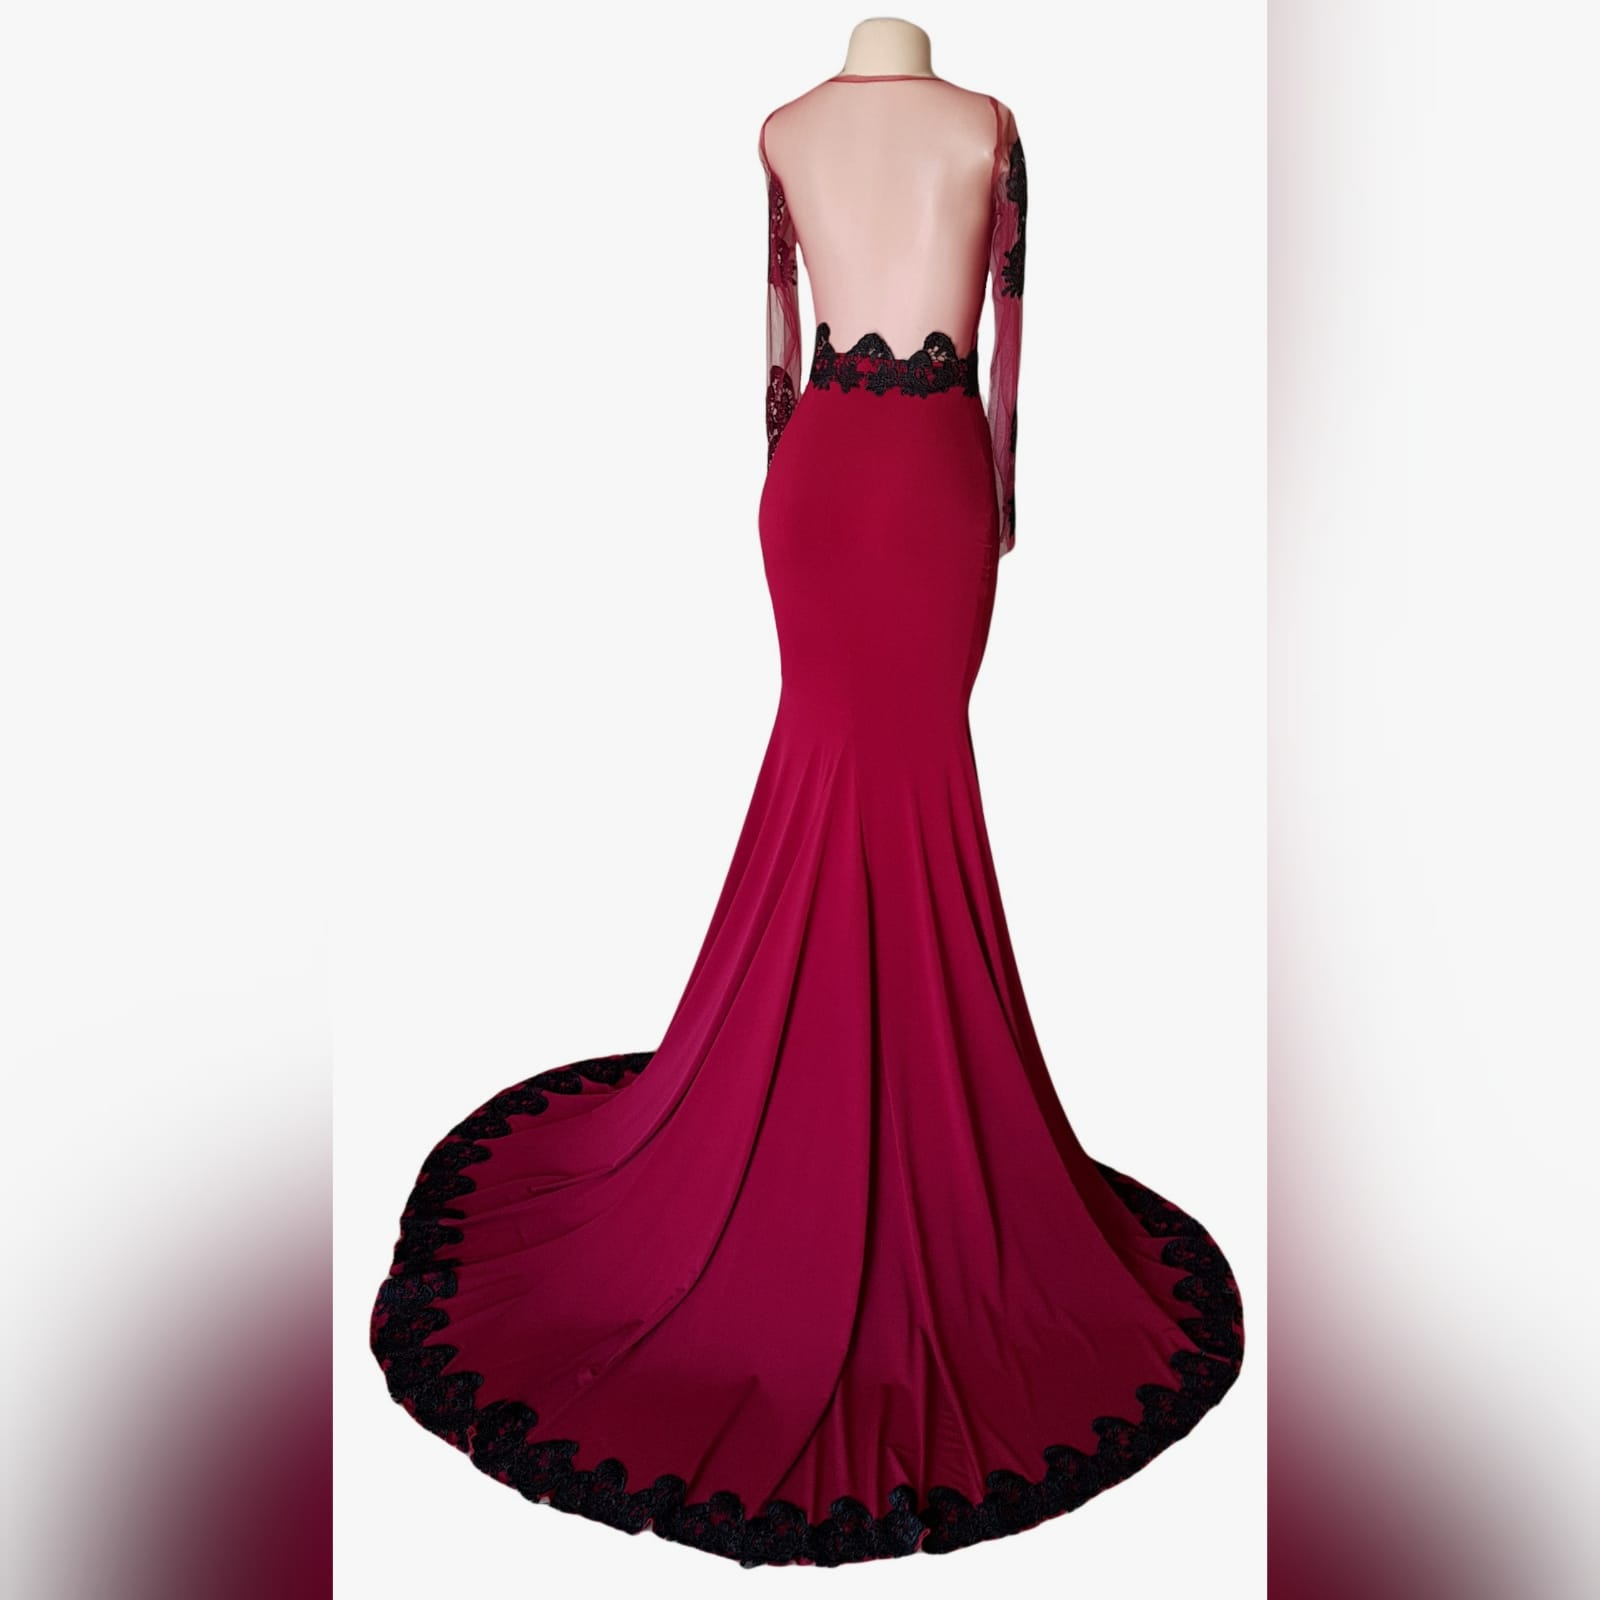 Soft mermaid burgundy matric farewell dress detailed with black lace 2 palesa looked gorgeous with my creation. A soft mermaid burgundy matric farewell dress detailed with black lace. With a sheer open back and long sheer sleeves detailed with black lace.